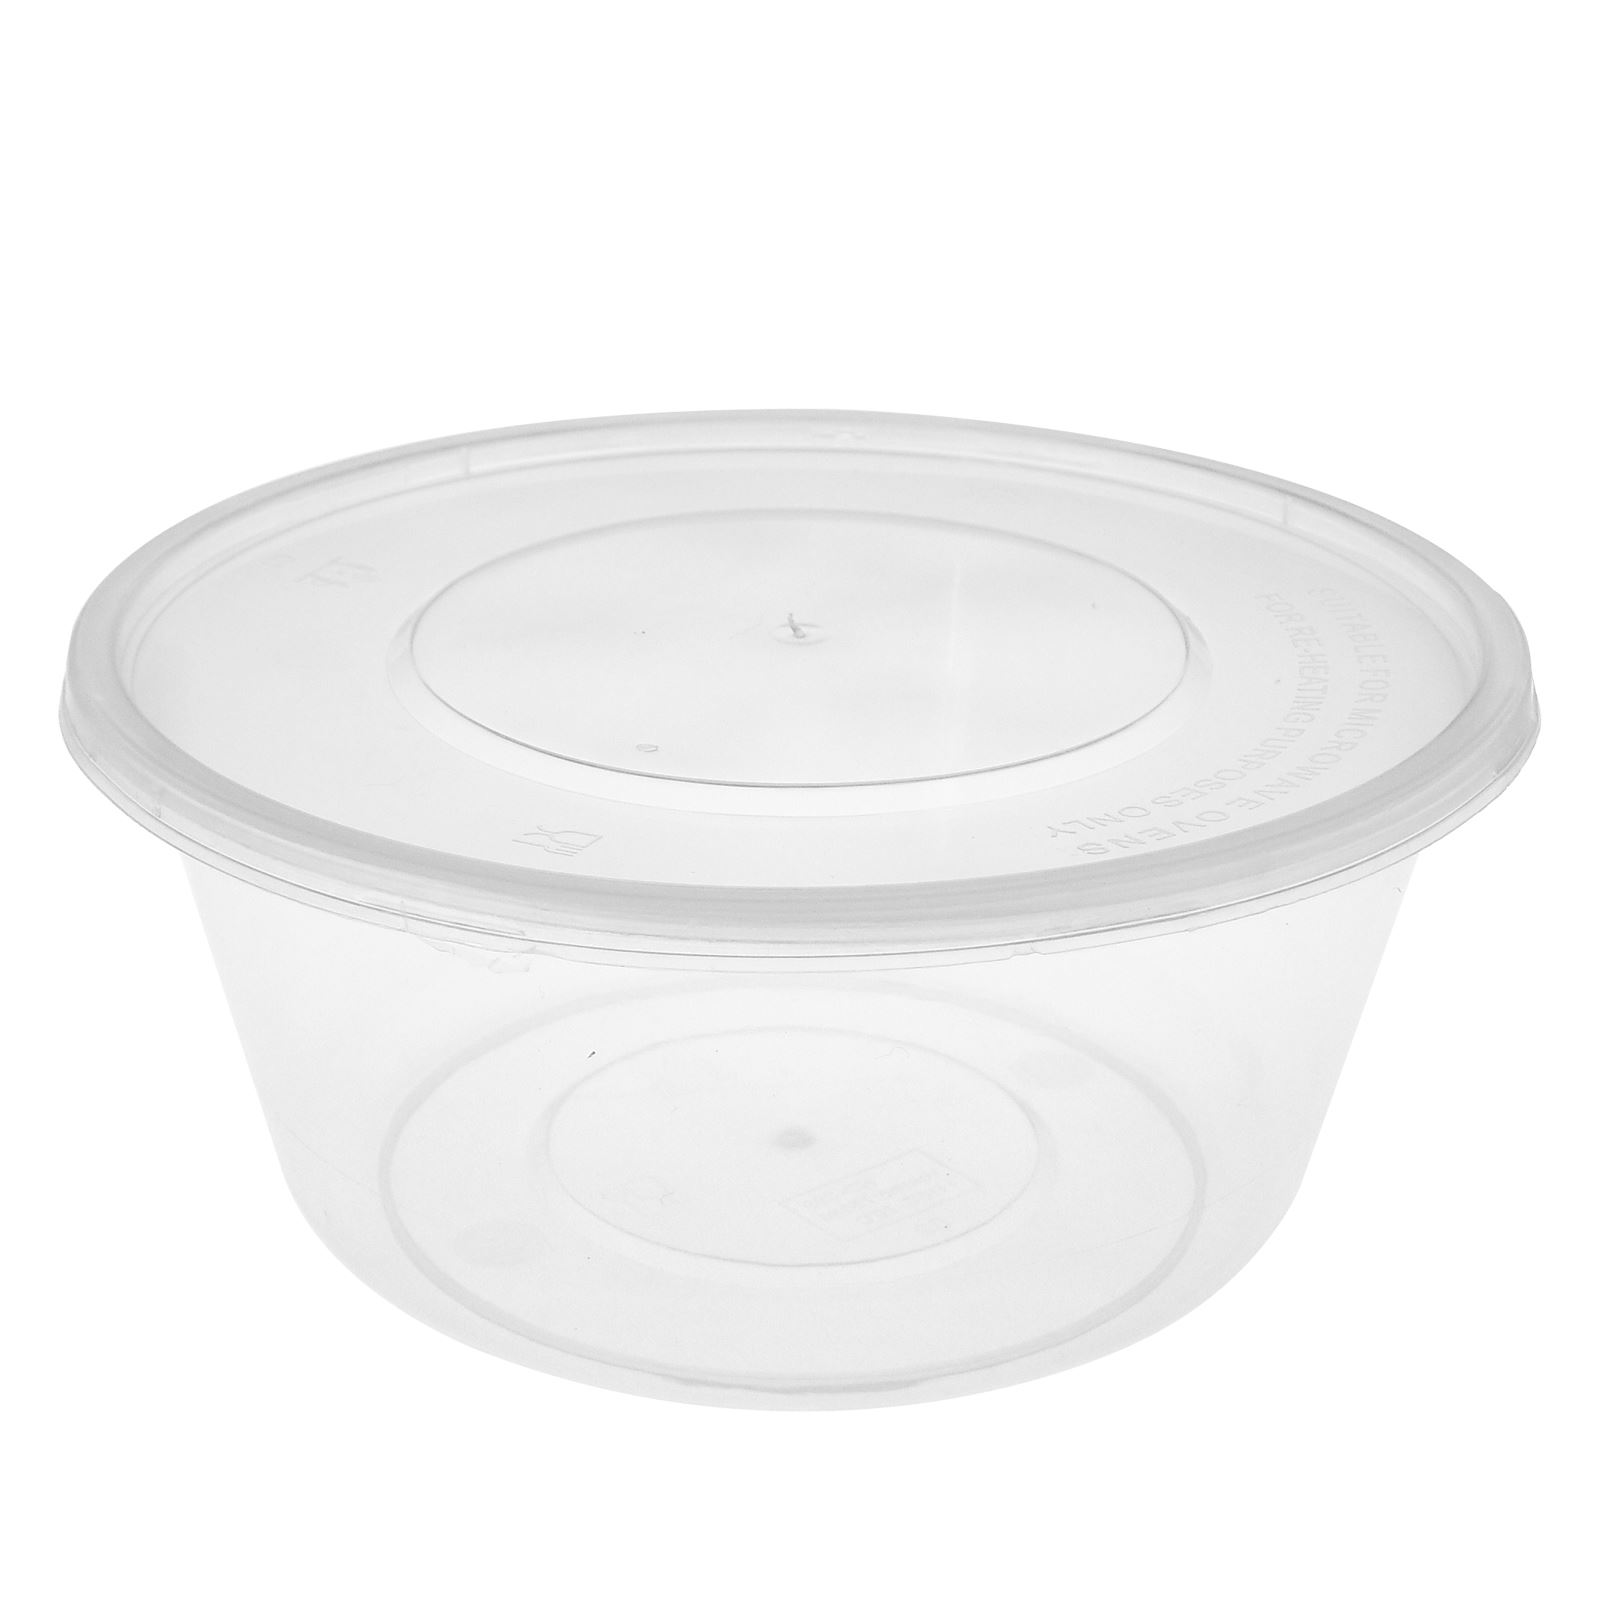 large fot iris pull flexi plastic for stack boxes tubs storage all box quart schools other intent cupcakes view clear tub